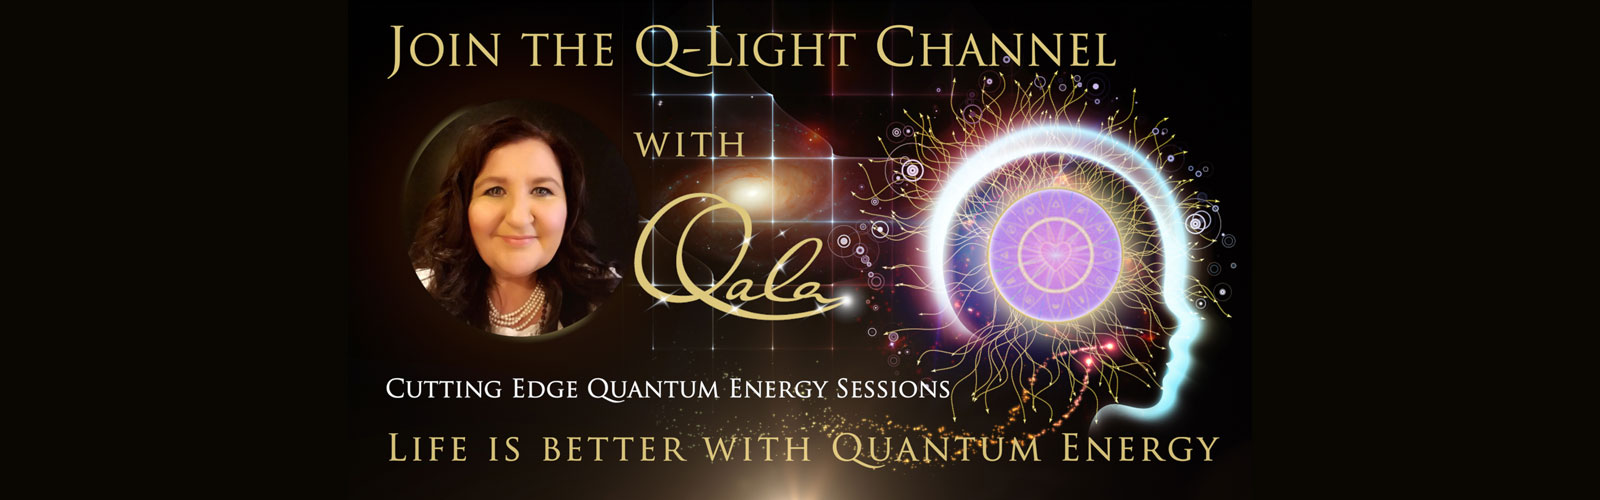 q-light-channels-monthly-subscription-registration-banner